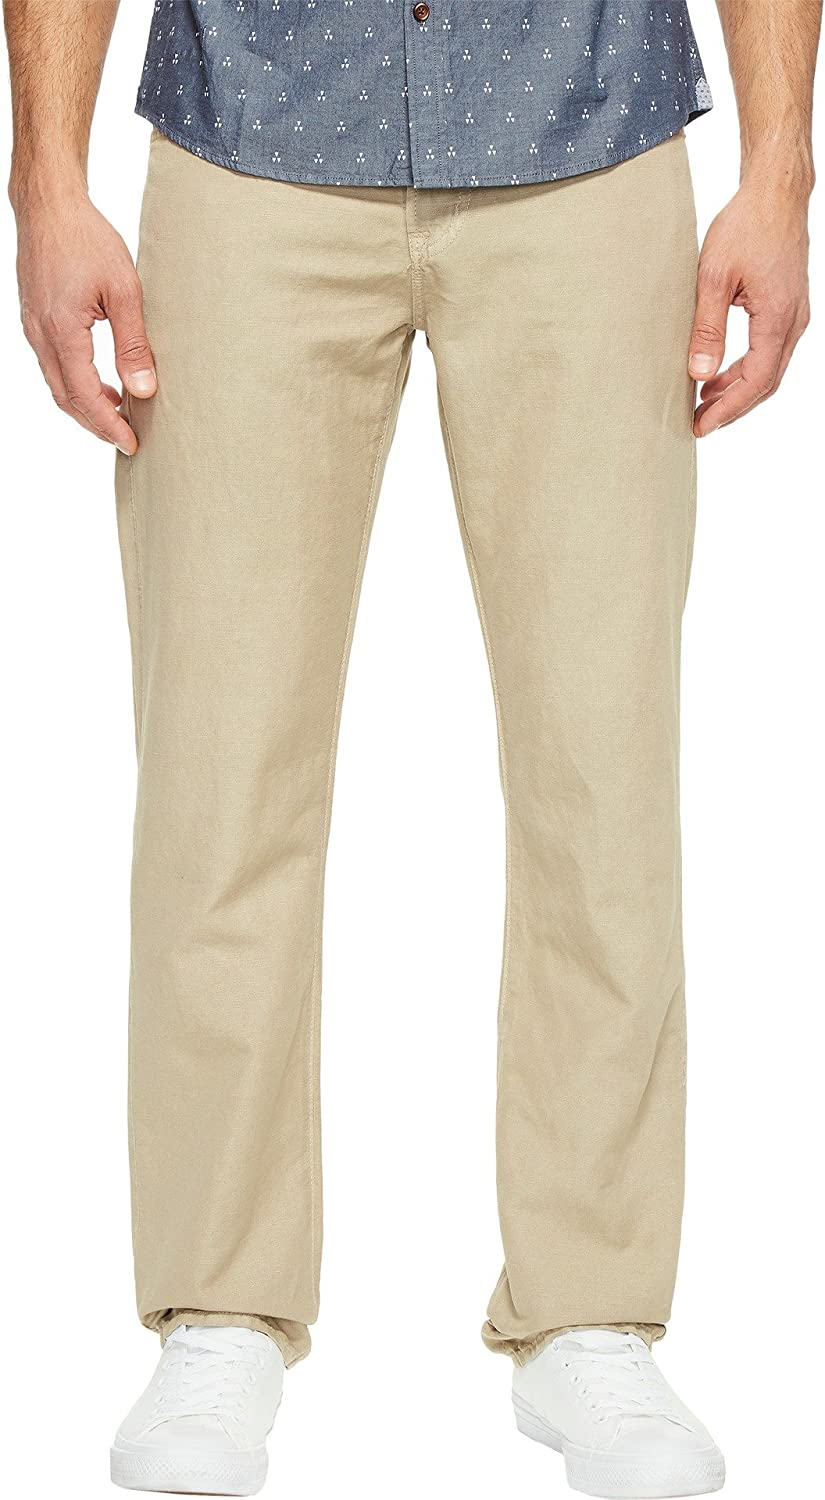 b7d82536441 Top1  AG Adriano Goldschmied Mens Graduate Tailored Leg Linen Pants in  Sulfur Desert Stone